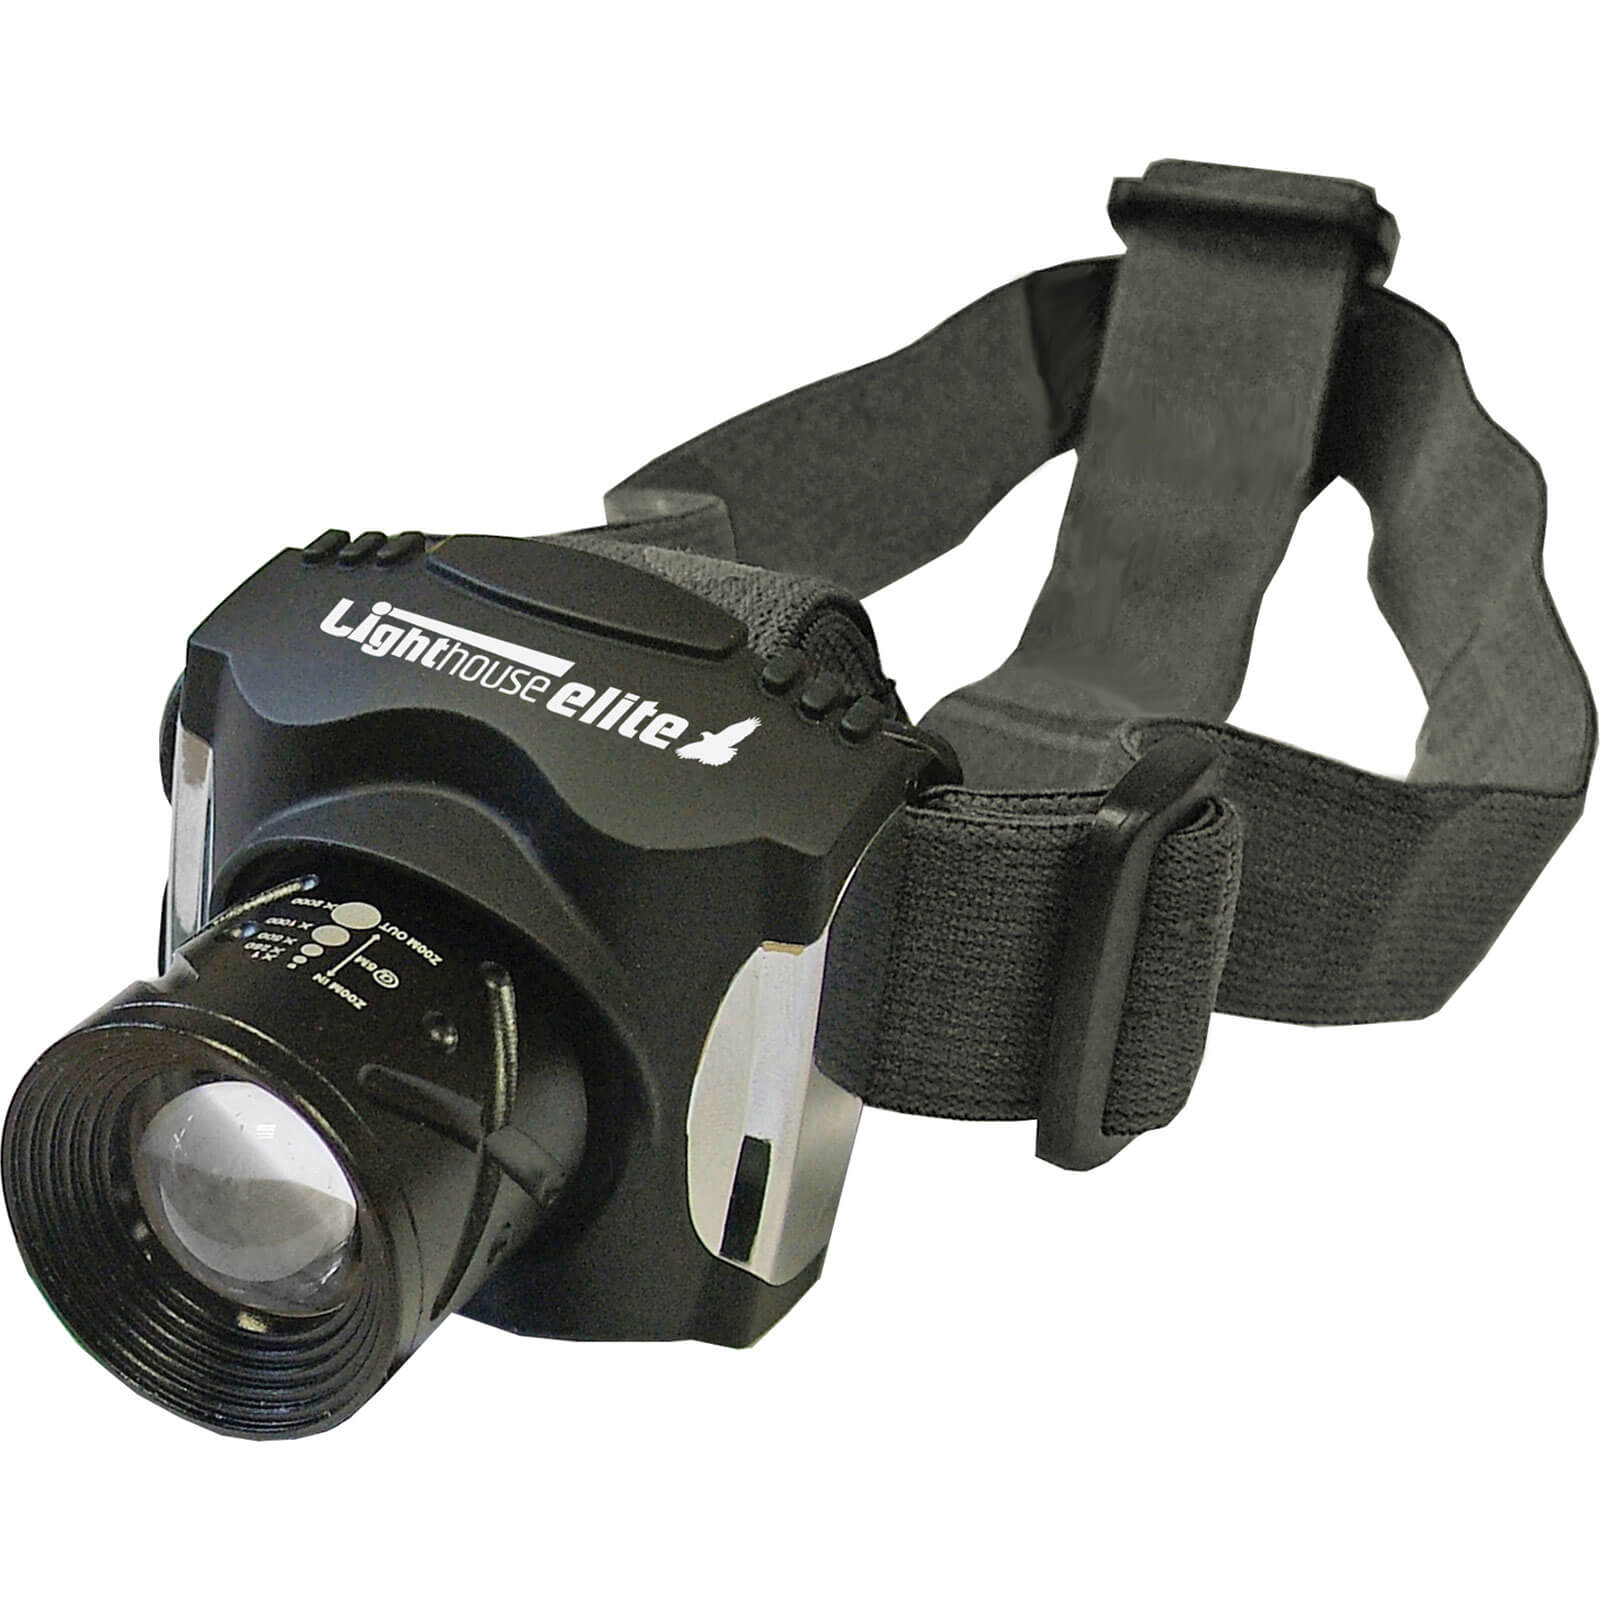 Lighthouse Elite Focus LED Rechargeable Head Torch 140 Lumens